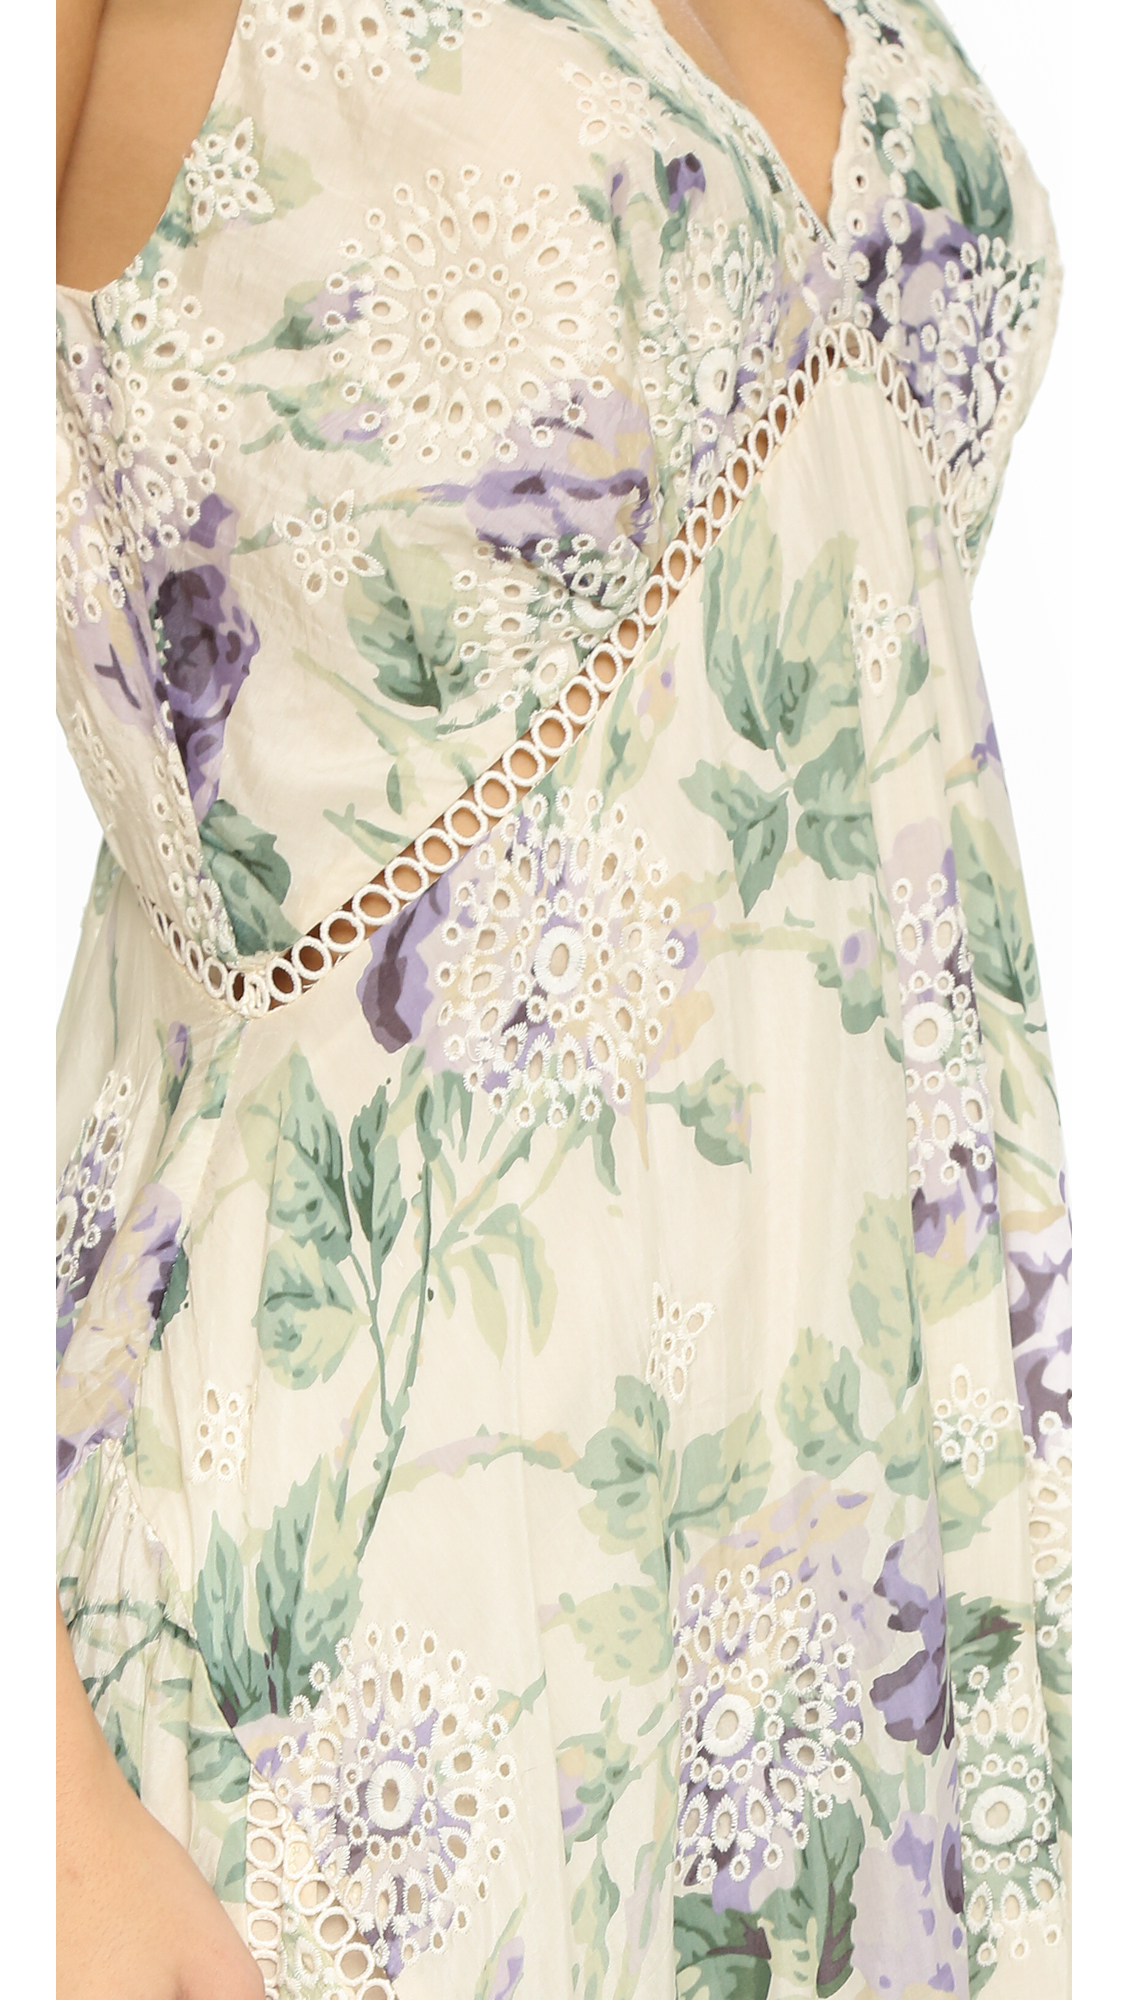 Lyst zimmermann lucia embroidered floral dress